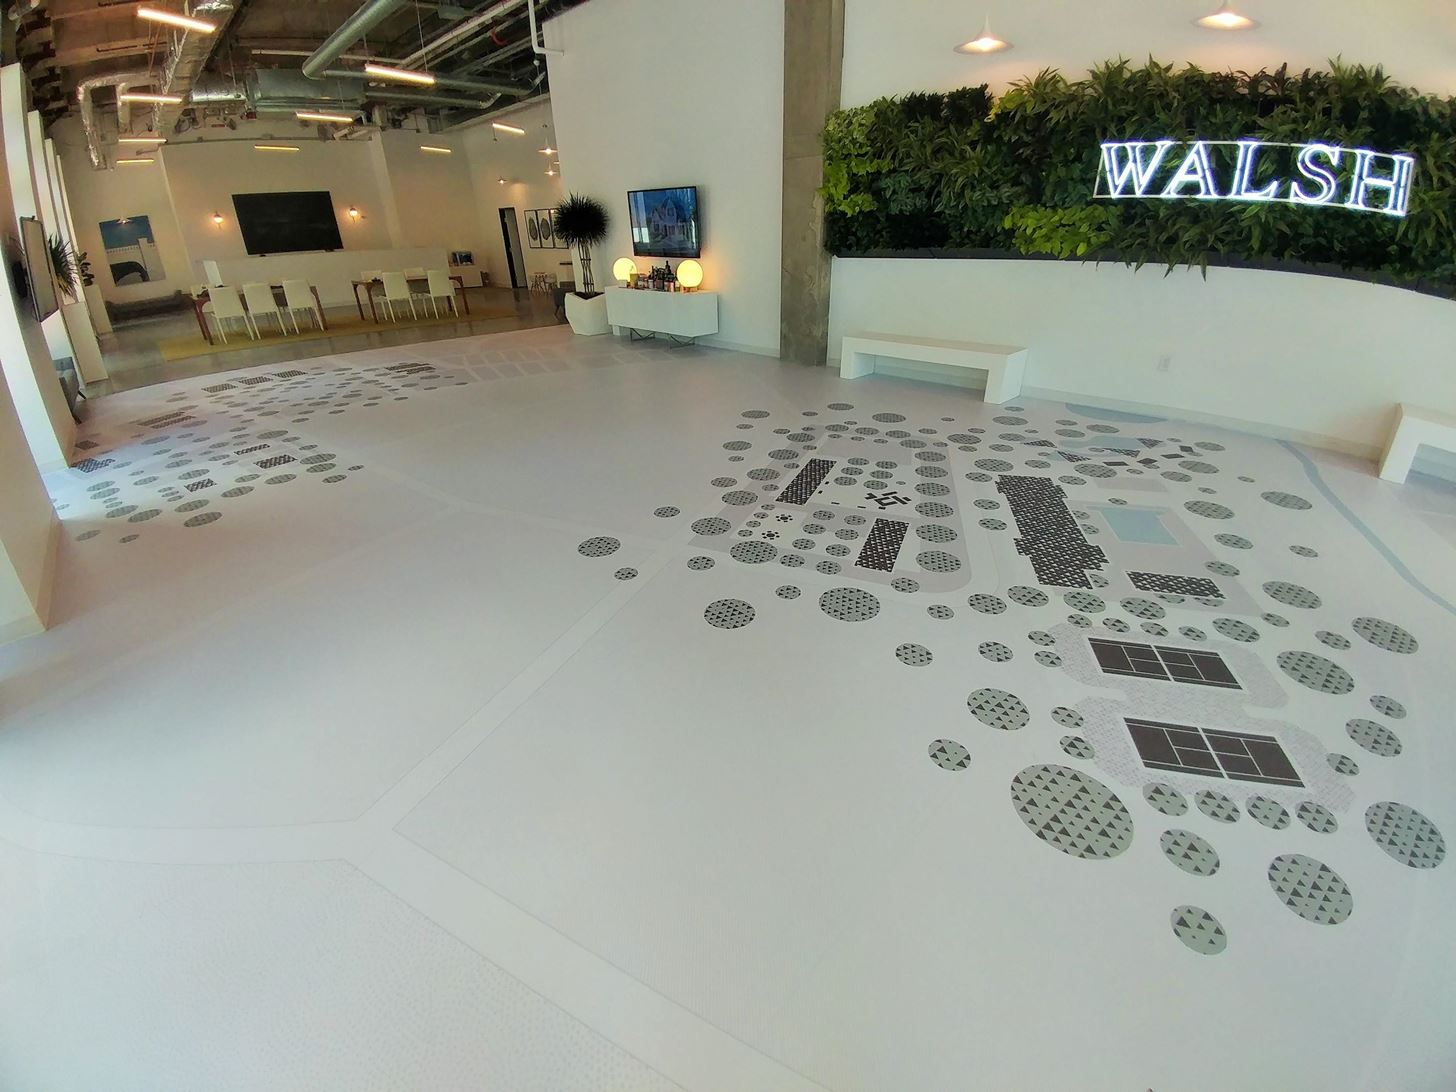 Tech-Savvy Walsh Community Previewed Through Augmented Reality with Pre-ARKit iOS